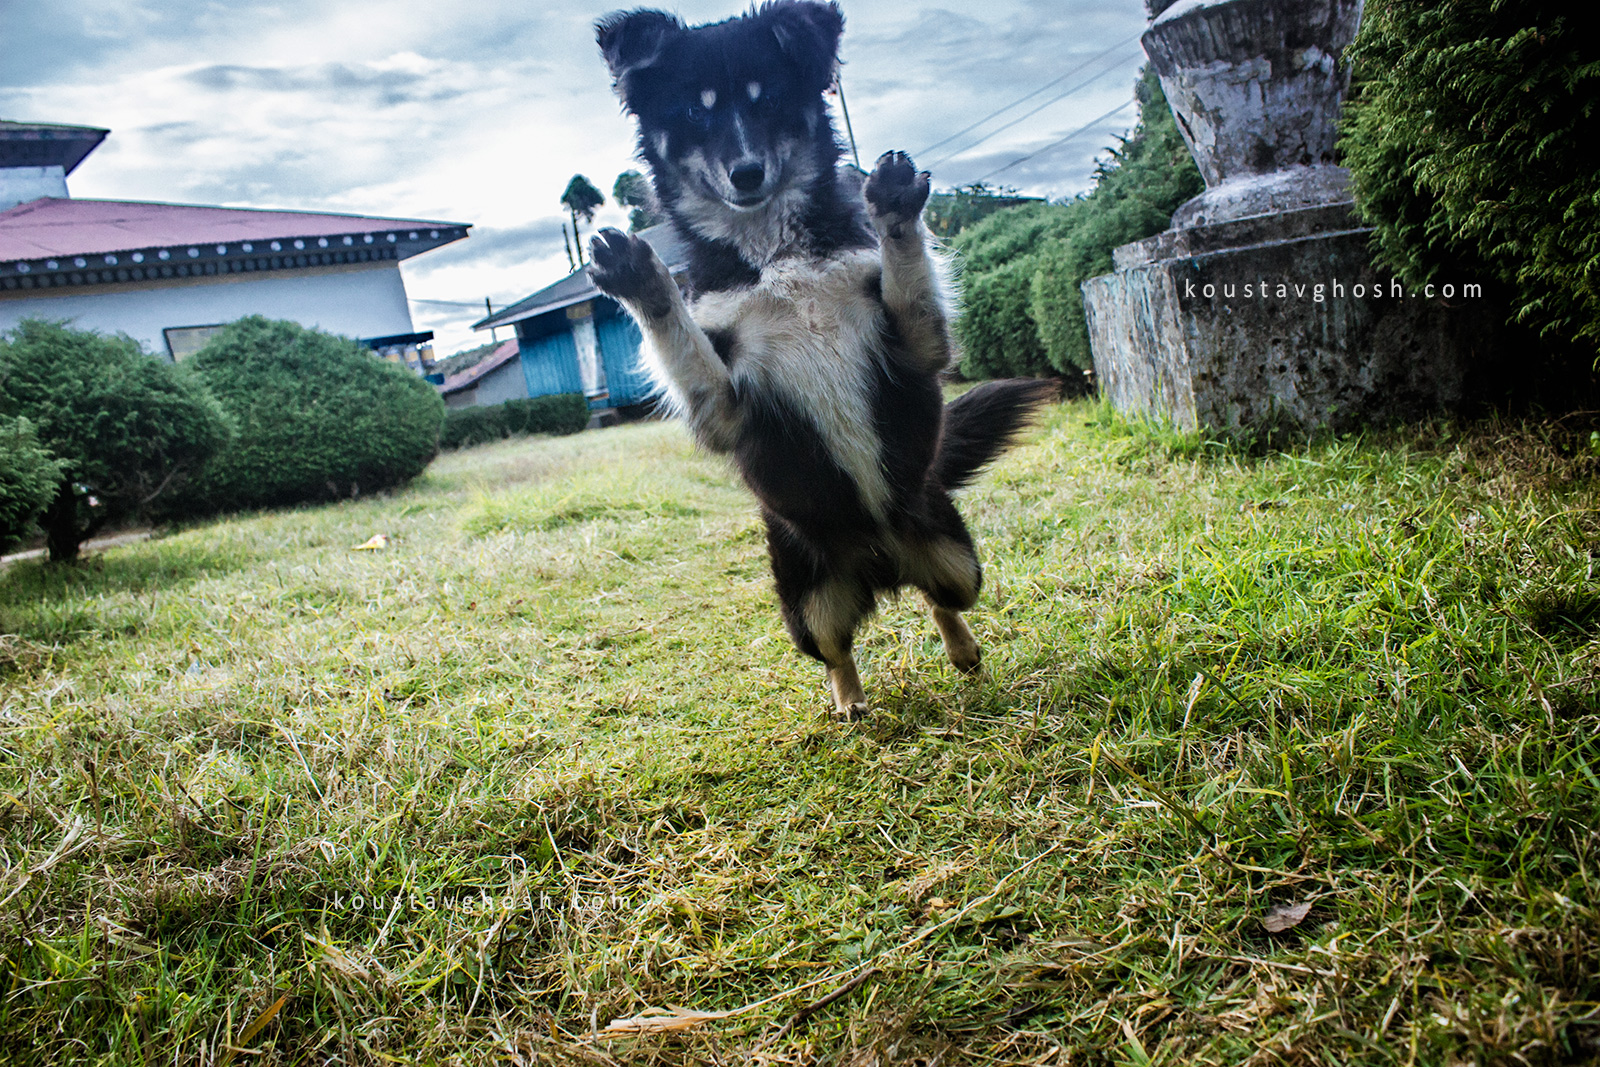 When I tried to click his photograph, he jumped upon my camera.